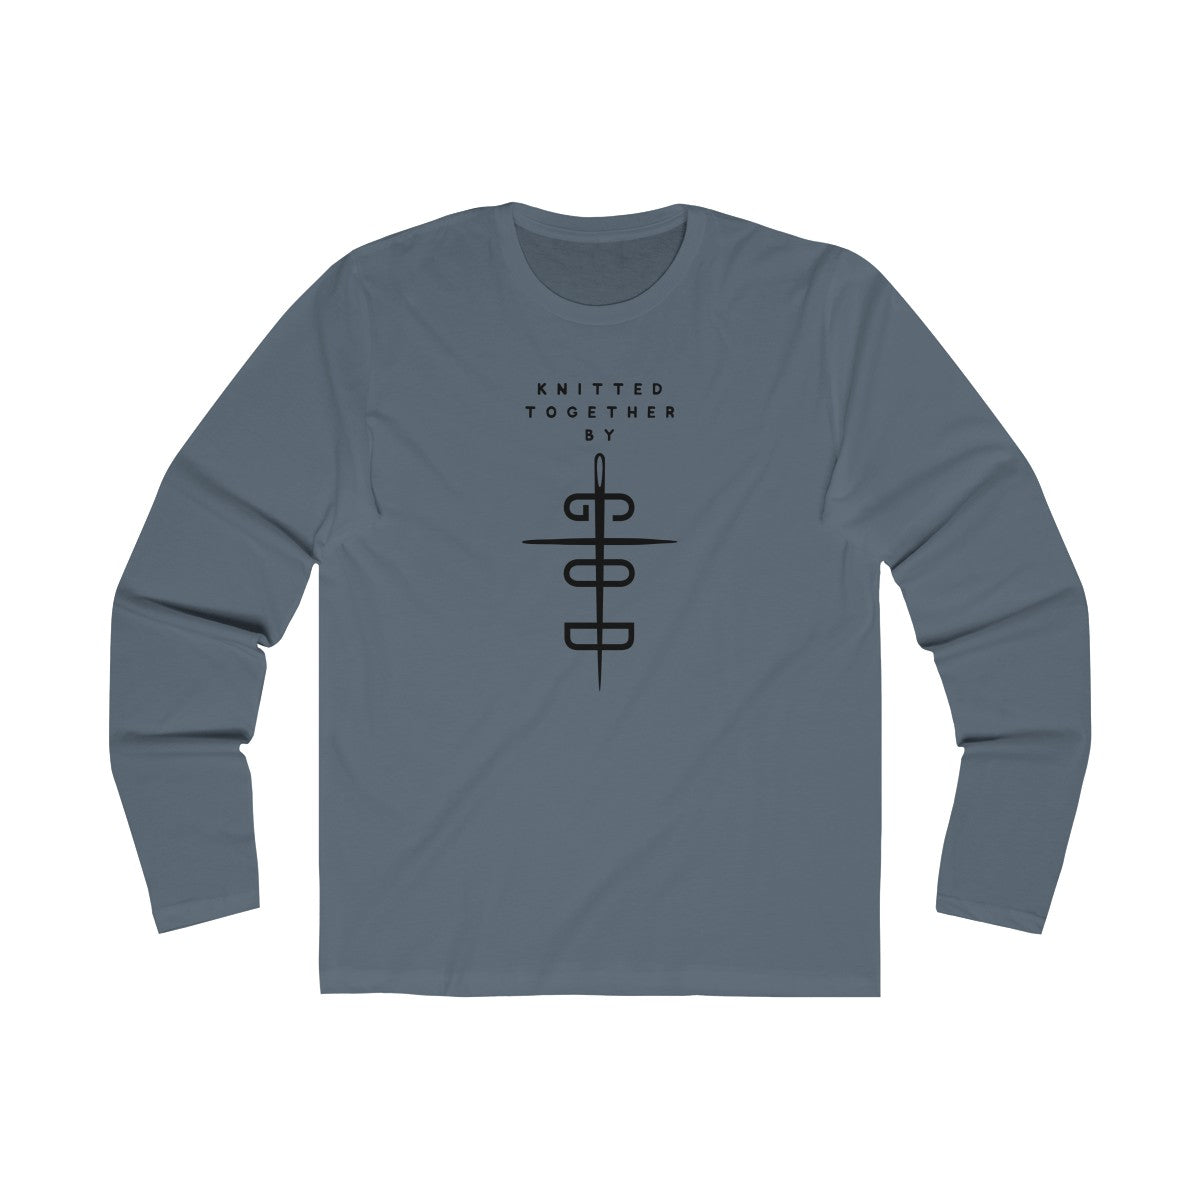 Knitted Together By God Men's Long Sleeve Crew Tee